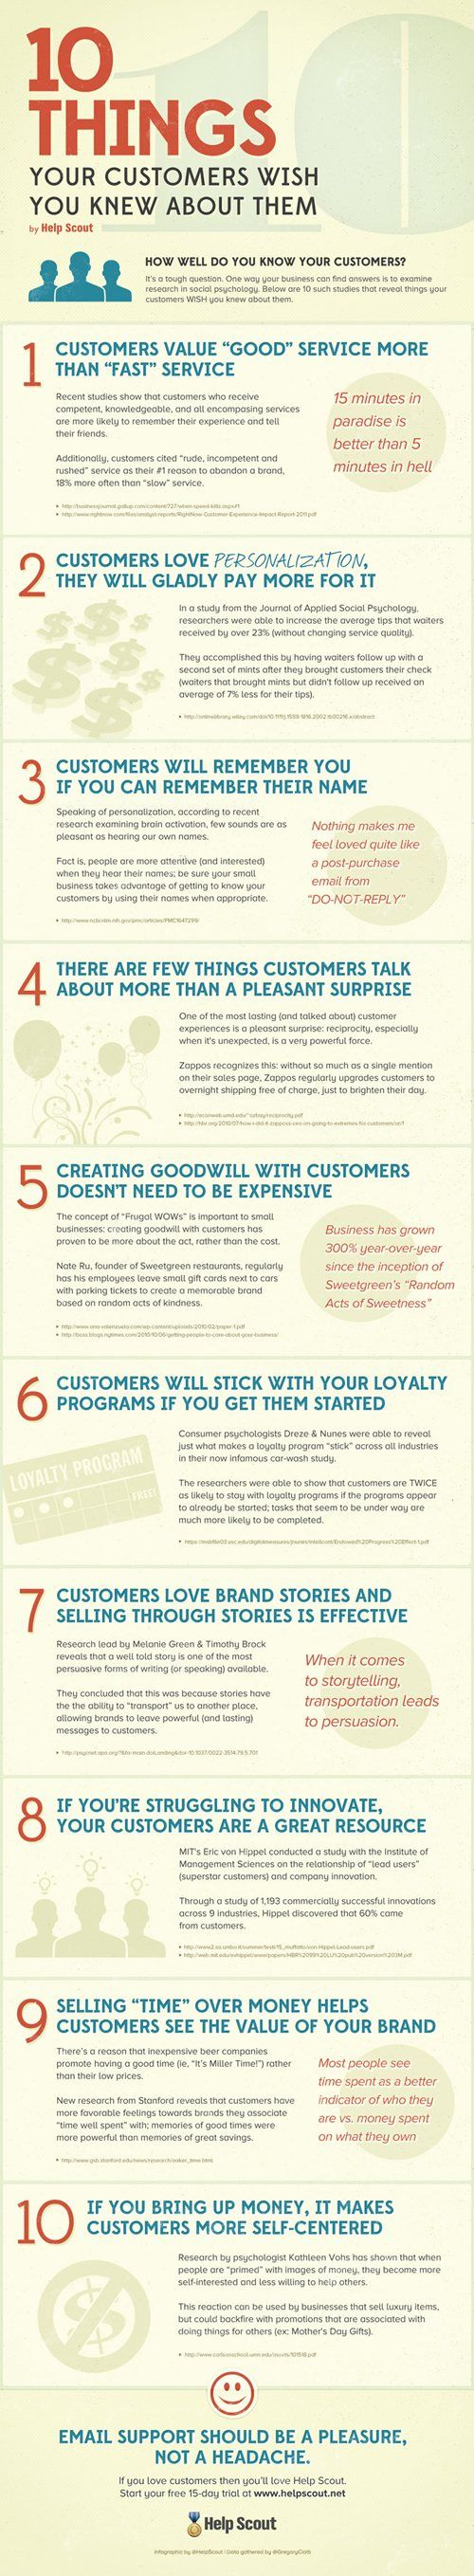 10 Things Your Customer Wish You Knew About Them! #infographic